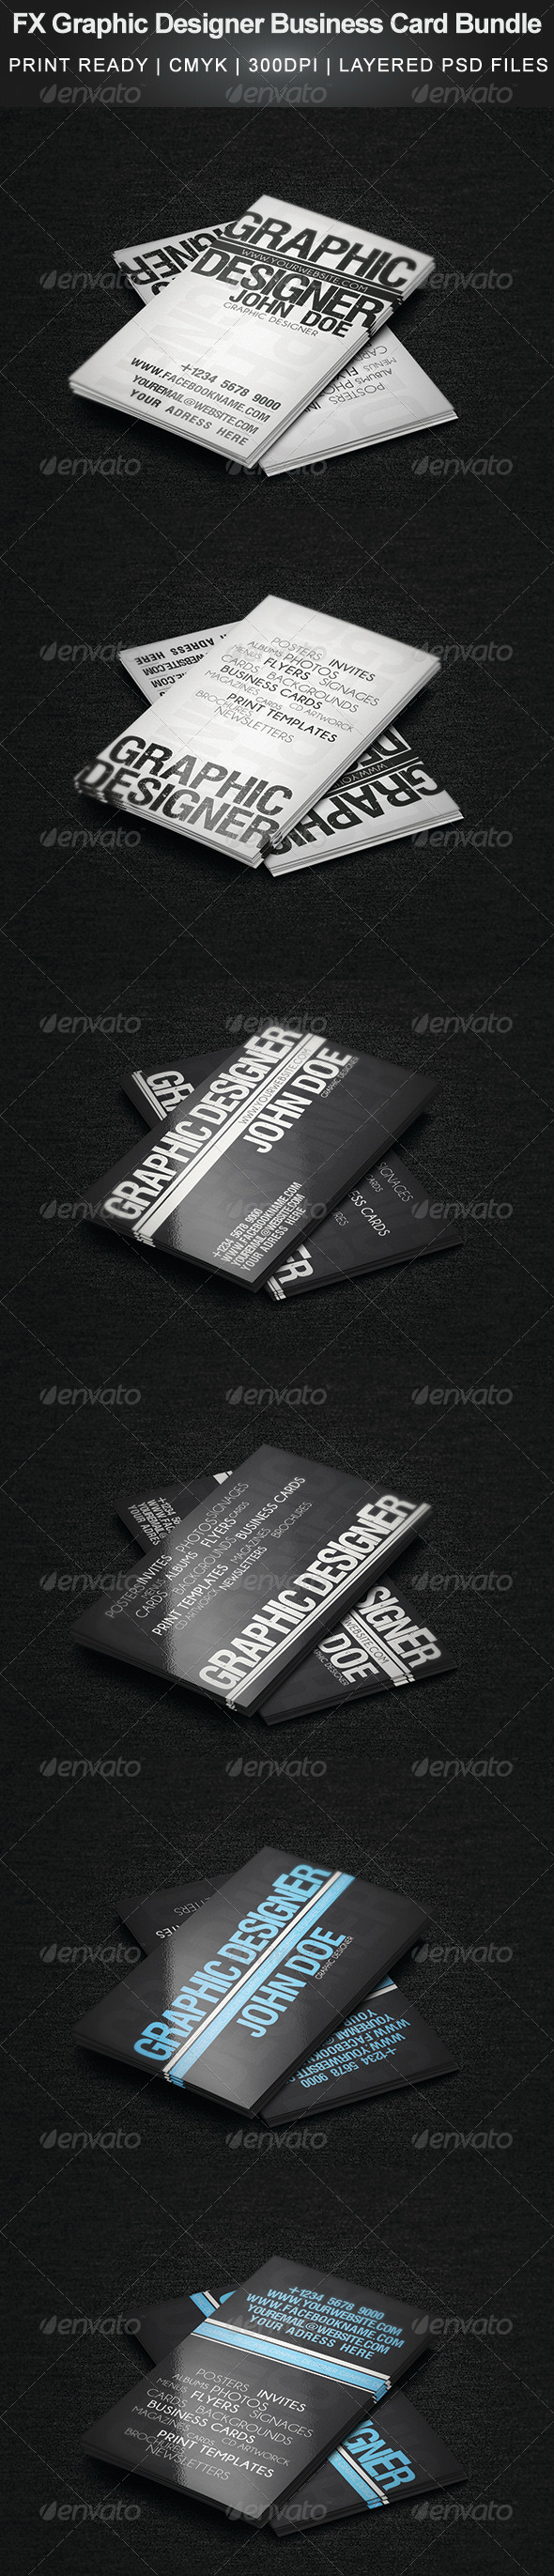 FX Graphic Designer Business Card Bundle